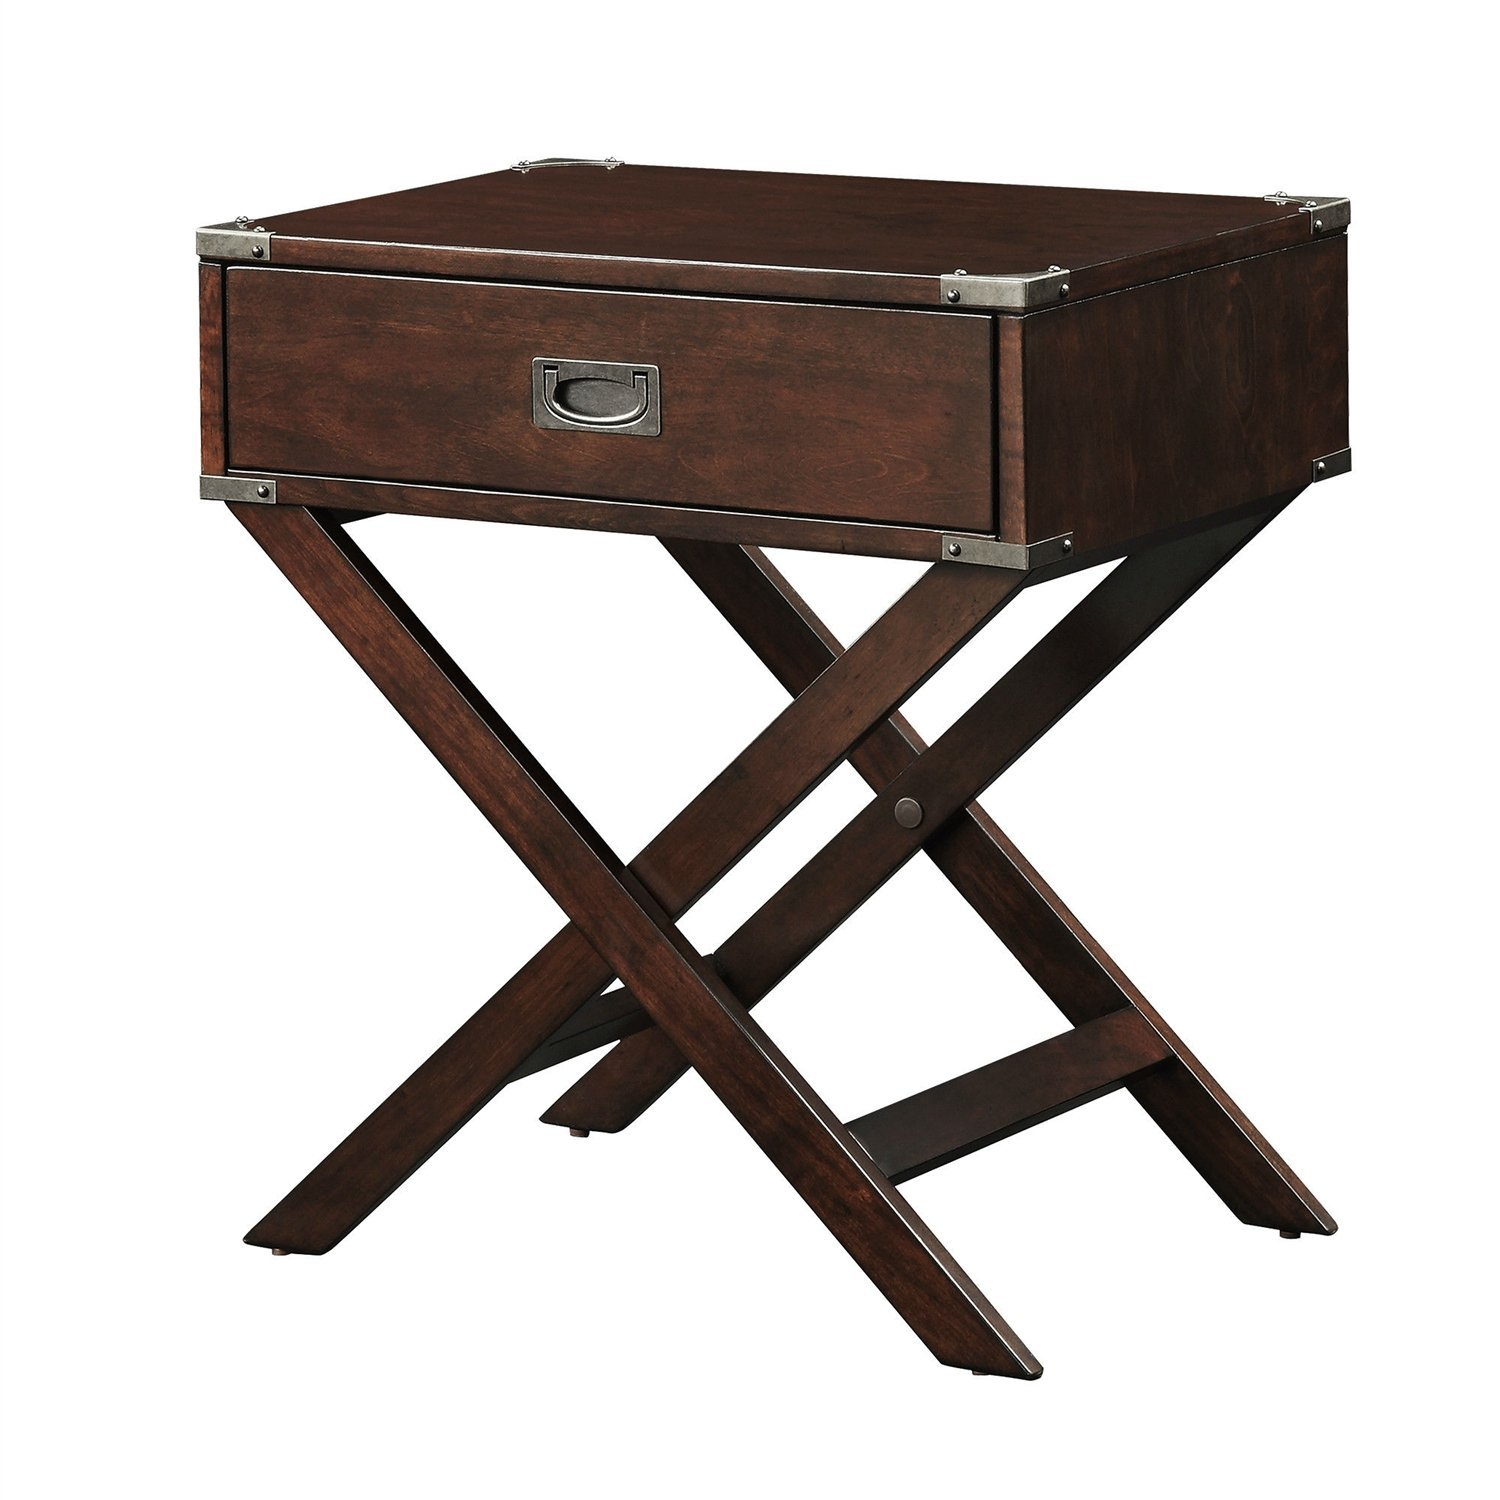 hilton furnitures ese accent table espresso brown wood drawer end nightstand with legs mcguire furniture cool light fixtures contemporary white lamps tall foyer kitchenette and